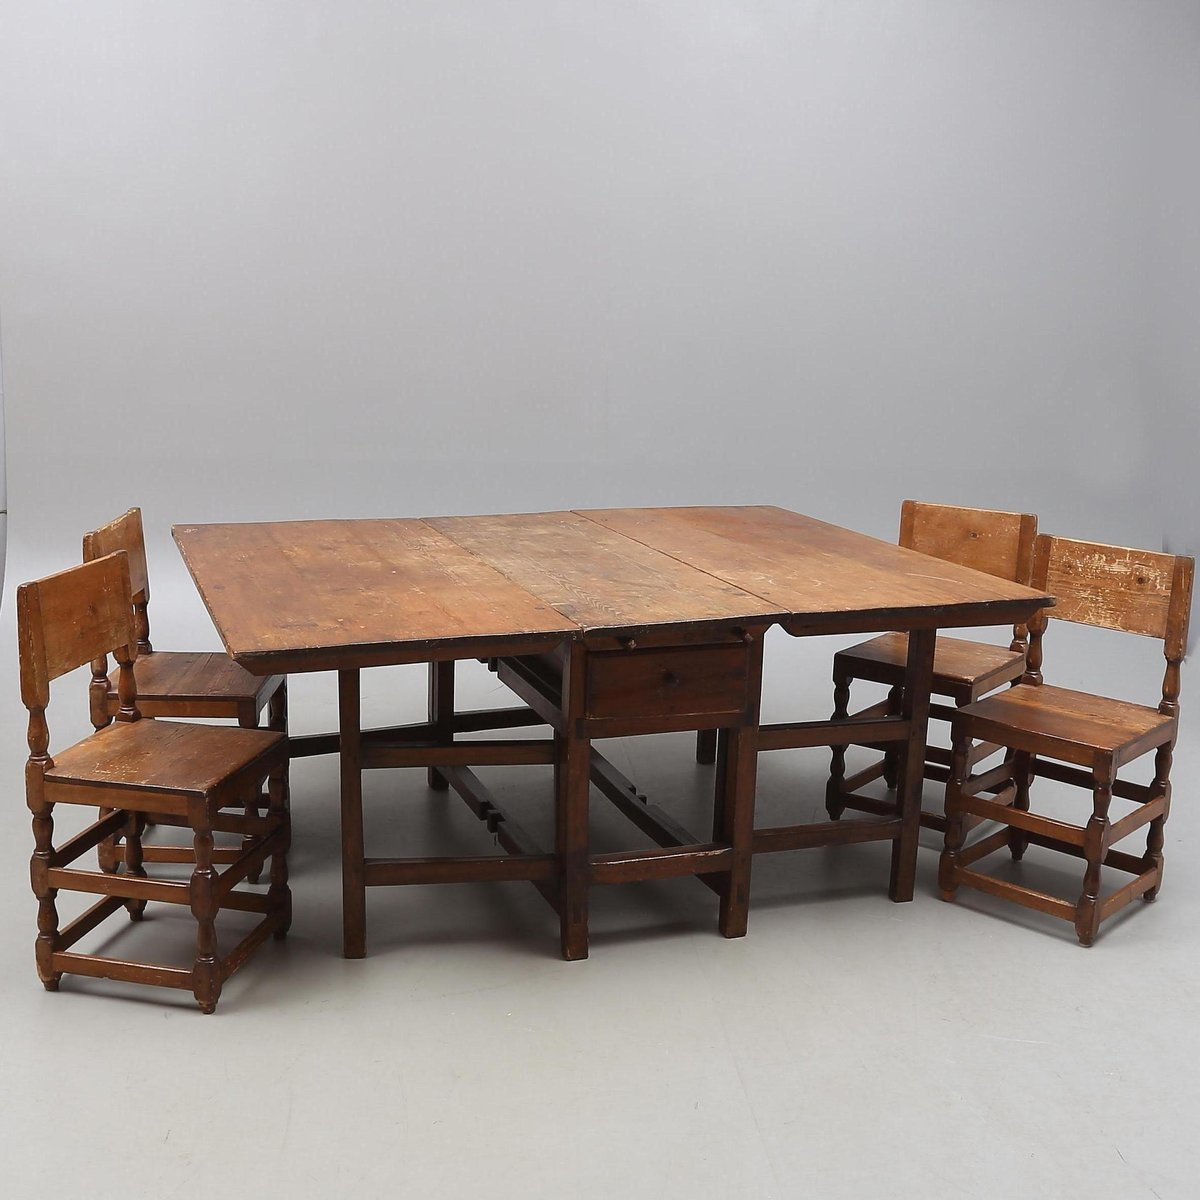 18th century dining set with table and four chairs for for Dinner table set for 4